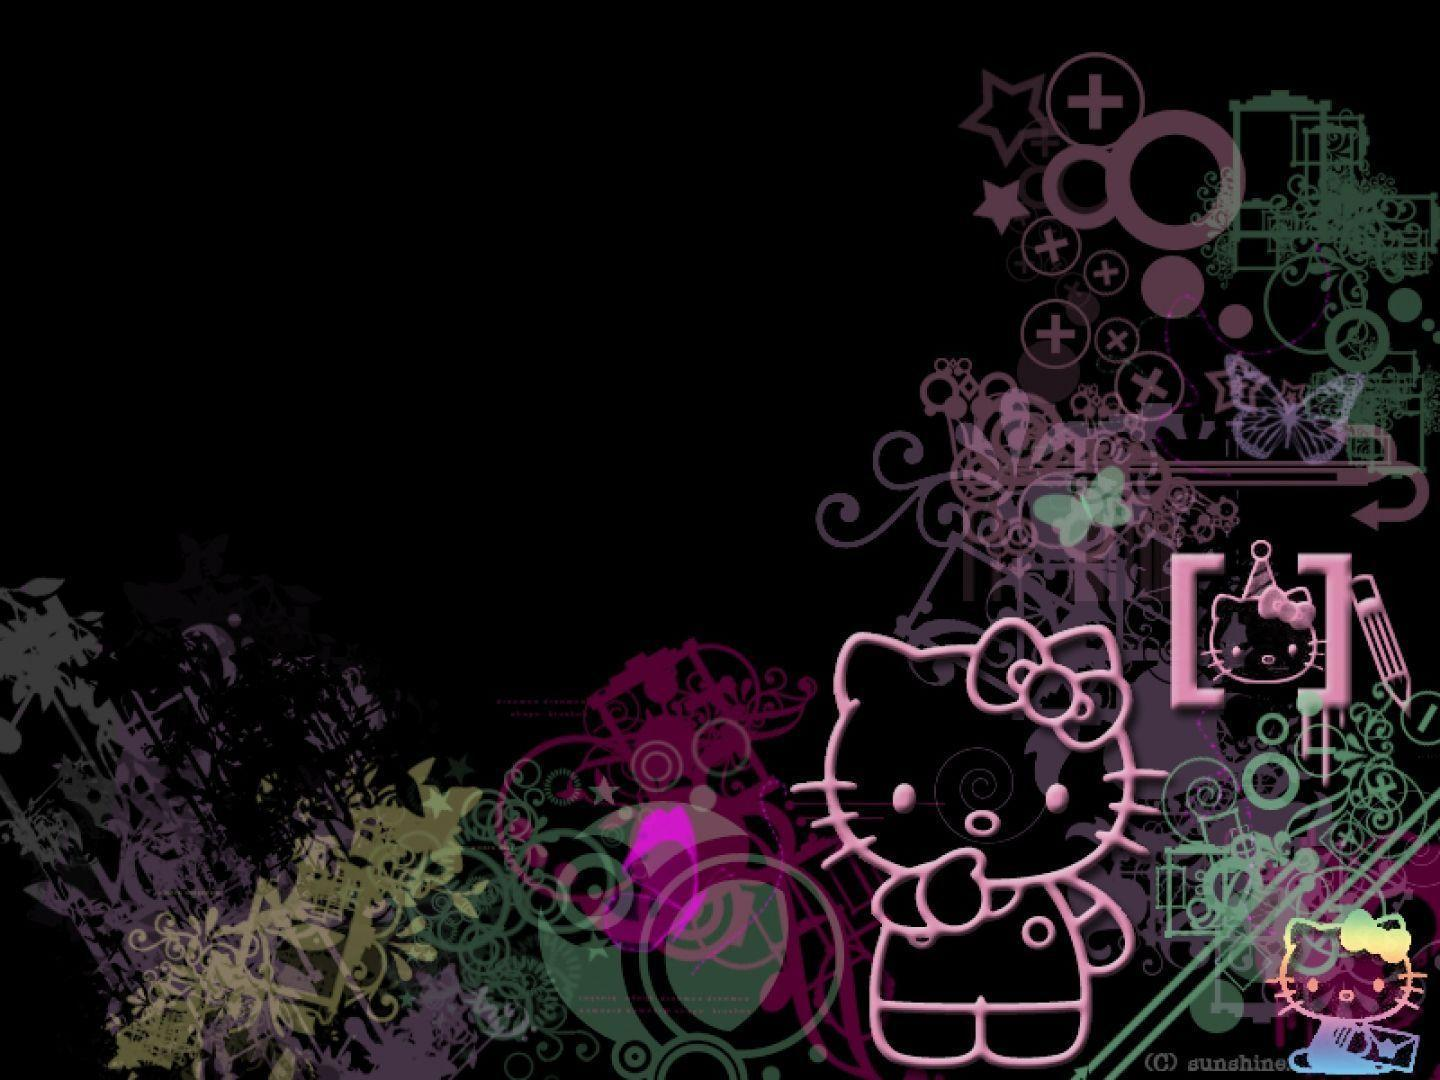 Android Wallpaper Hello Kitty Visa | AppsmediatamaNet